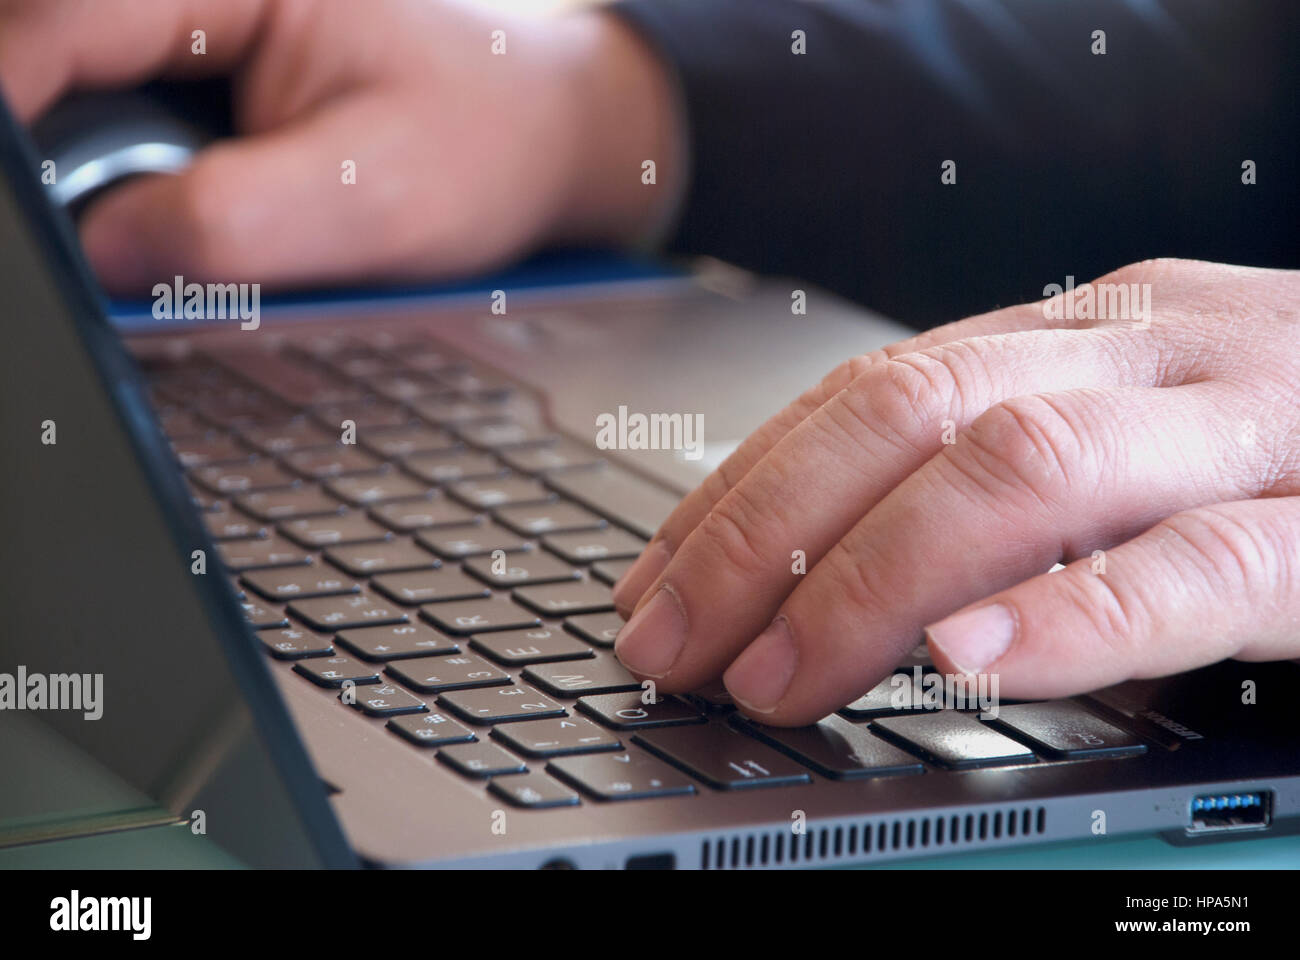 Businessman close-up view of the hands on the laptop keyboard - Stock Image